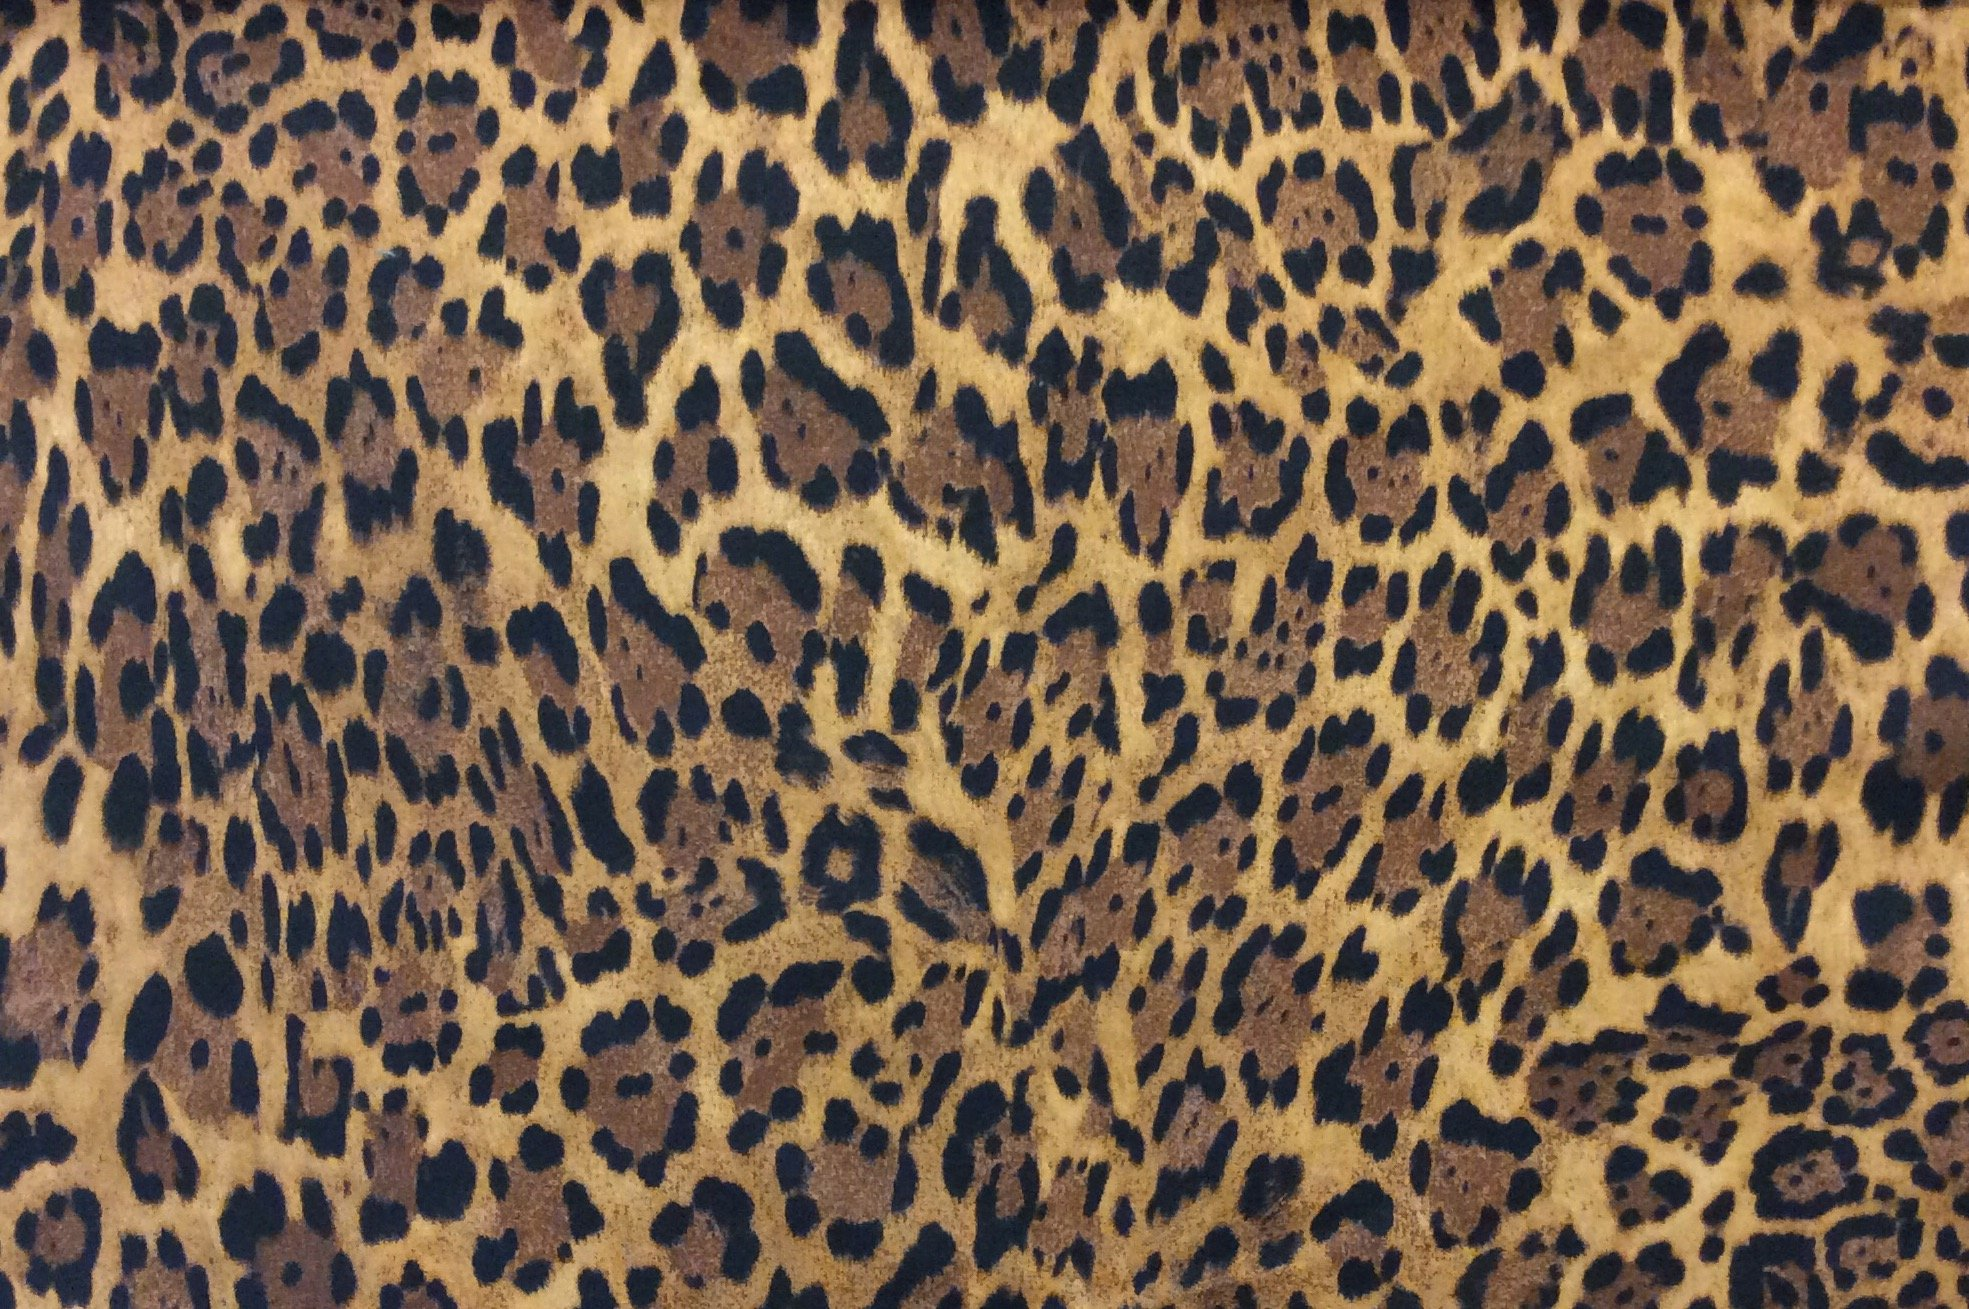 Wild Thing Cheetah Jungle Cat Fur Print Kitschy Spotted Cotton Quilt Fabric FT192